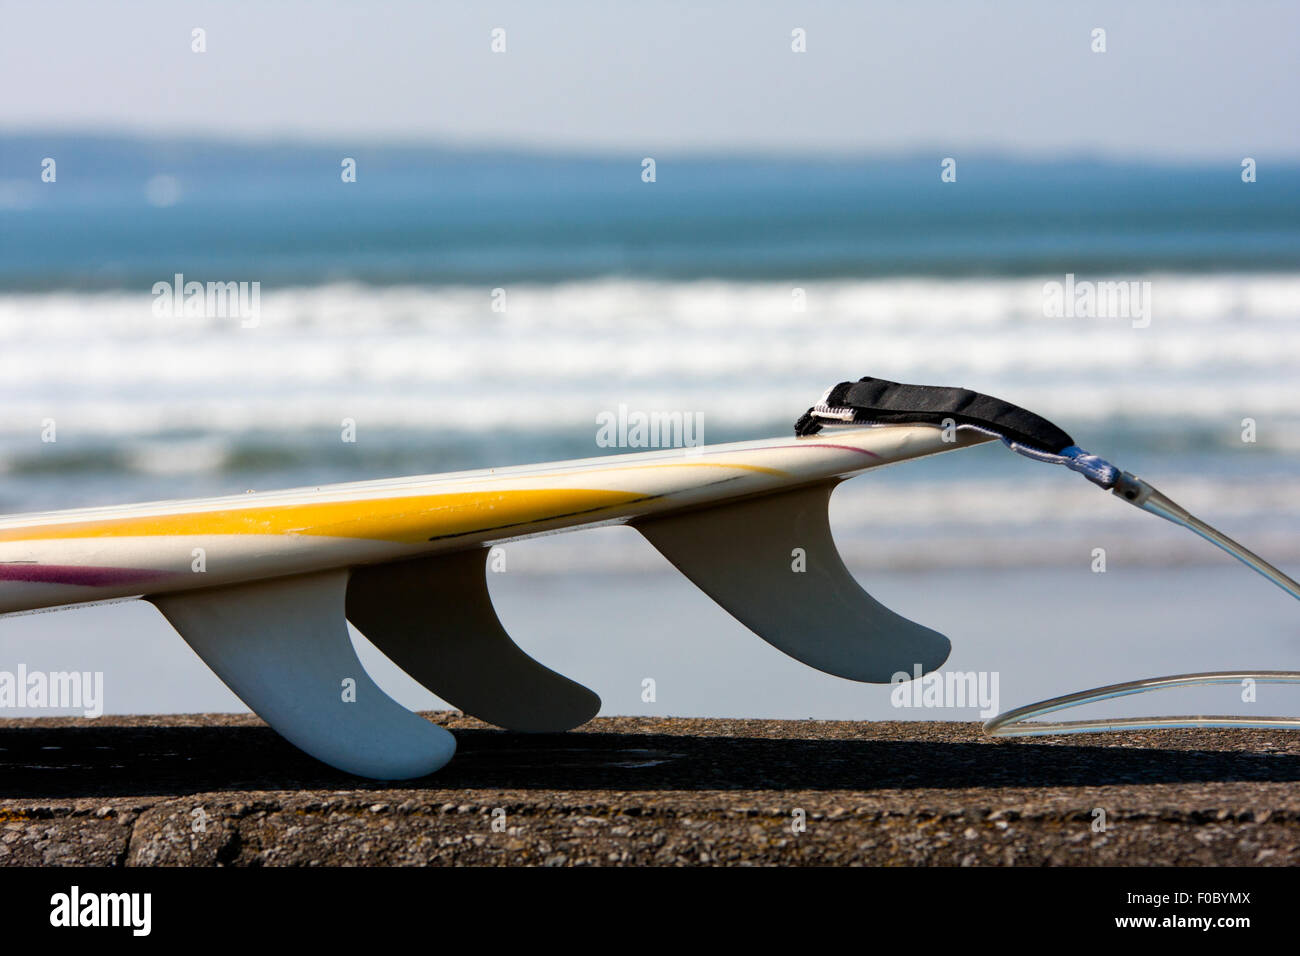 Surfboard with fins and waves on background, detail - Stock Image